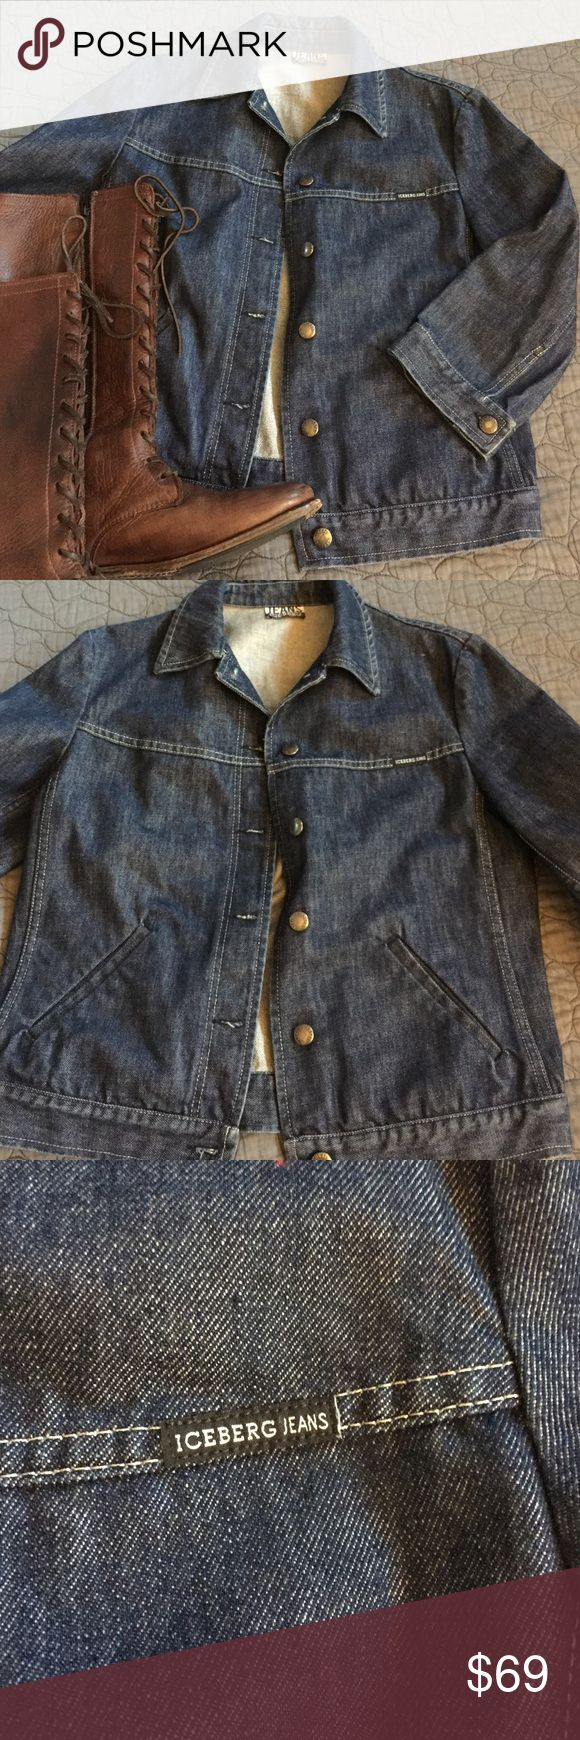 Iceberg Jean Jacket Fun Iceberg jean jacket made in Italy.  The European size is 44 which for this jacket is a medium.  Great with all kinds of outfits. Iceberg Jackets & Coats Jean Jackets